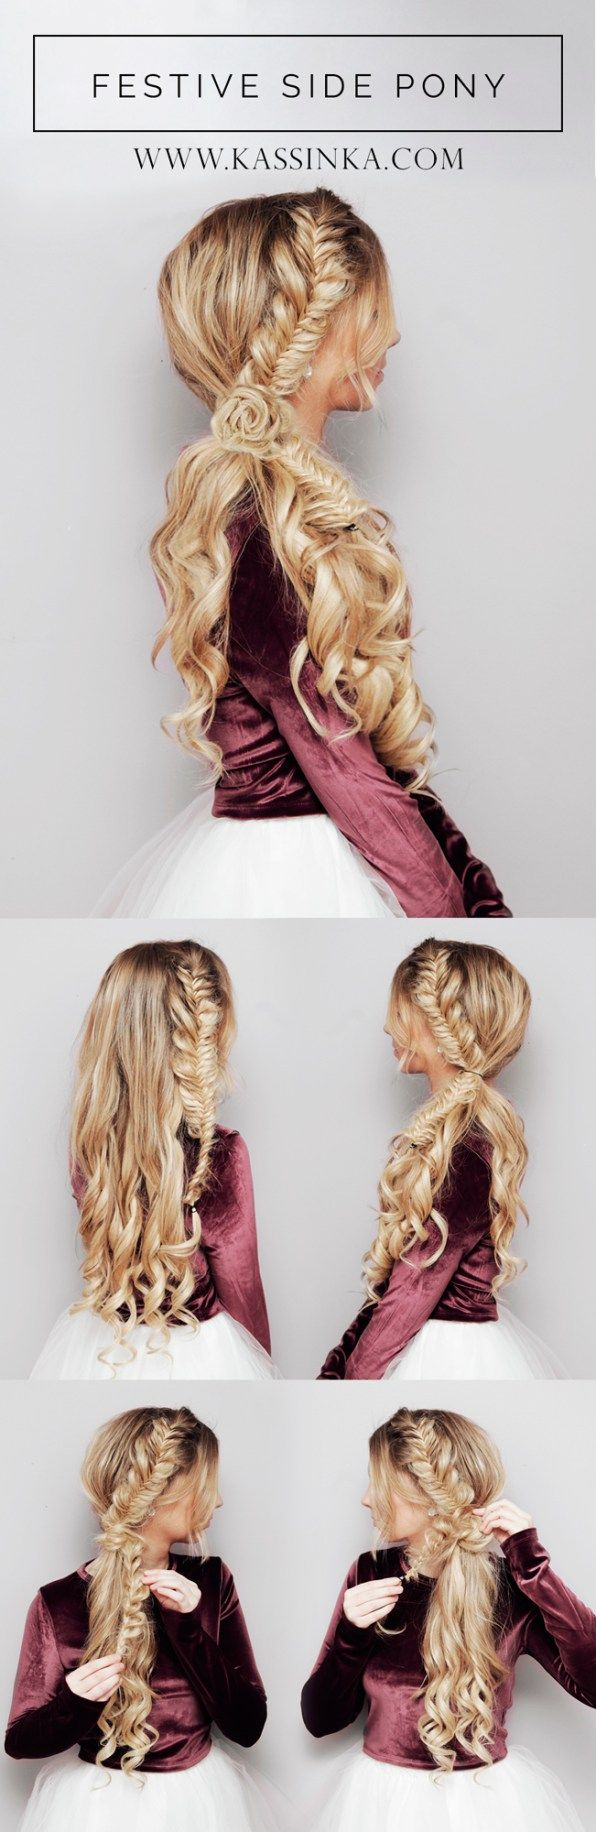 » Festive Side Ponytail Hair TutorialKassinka